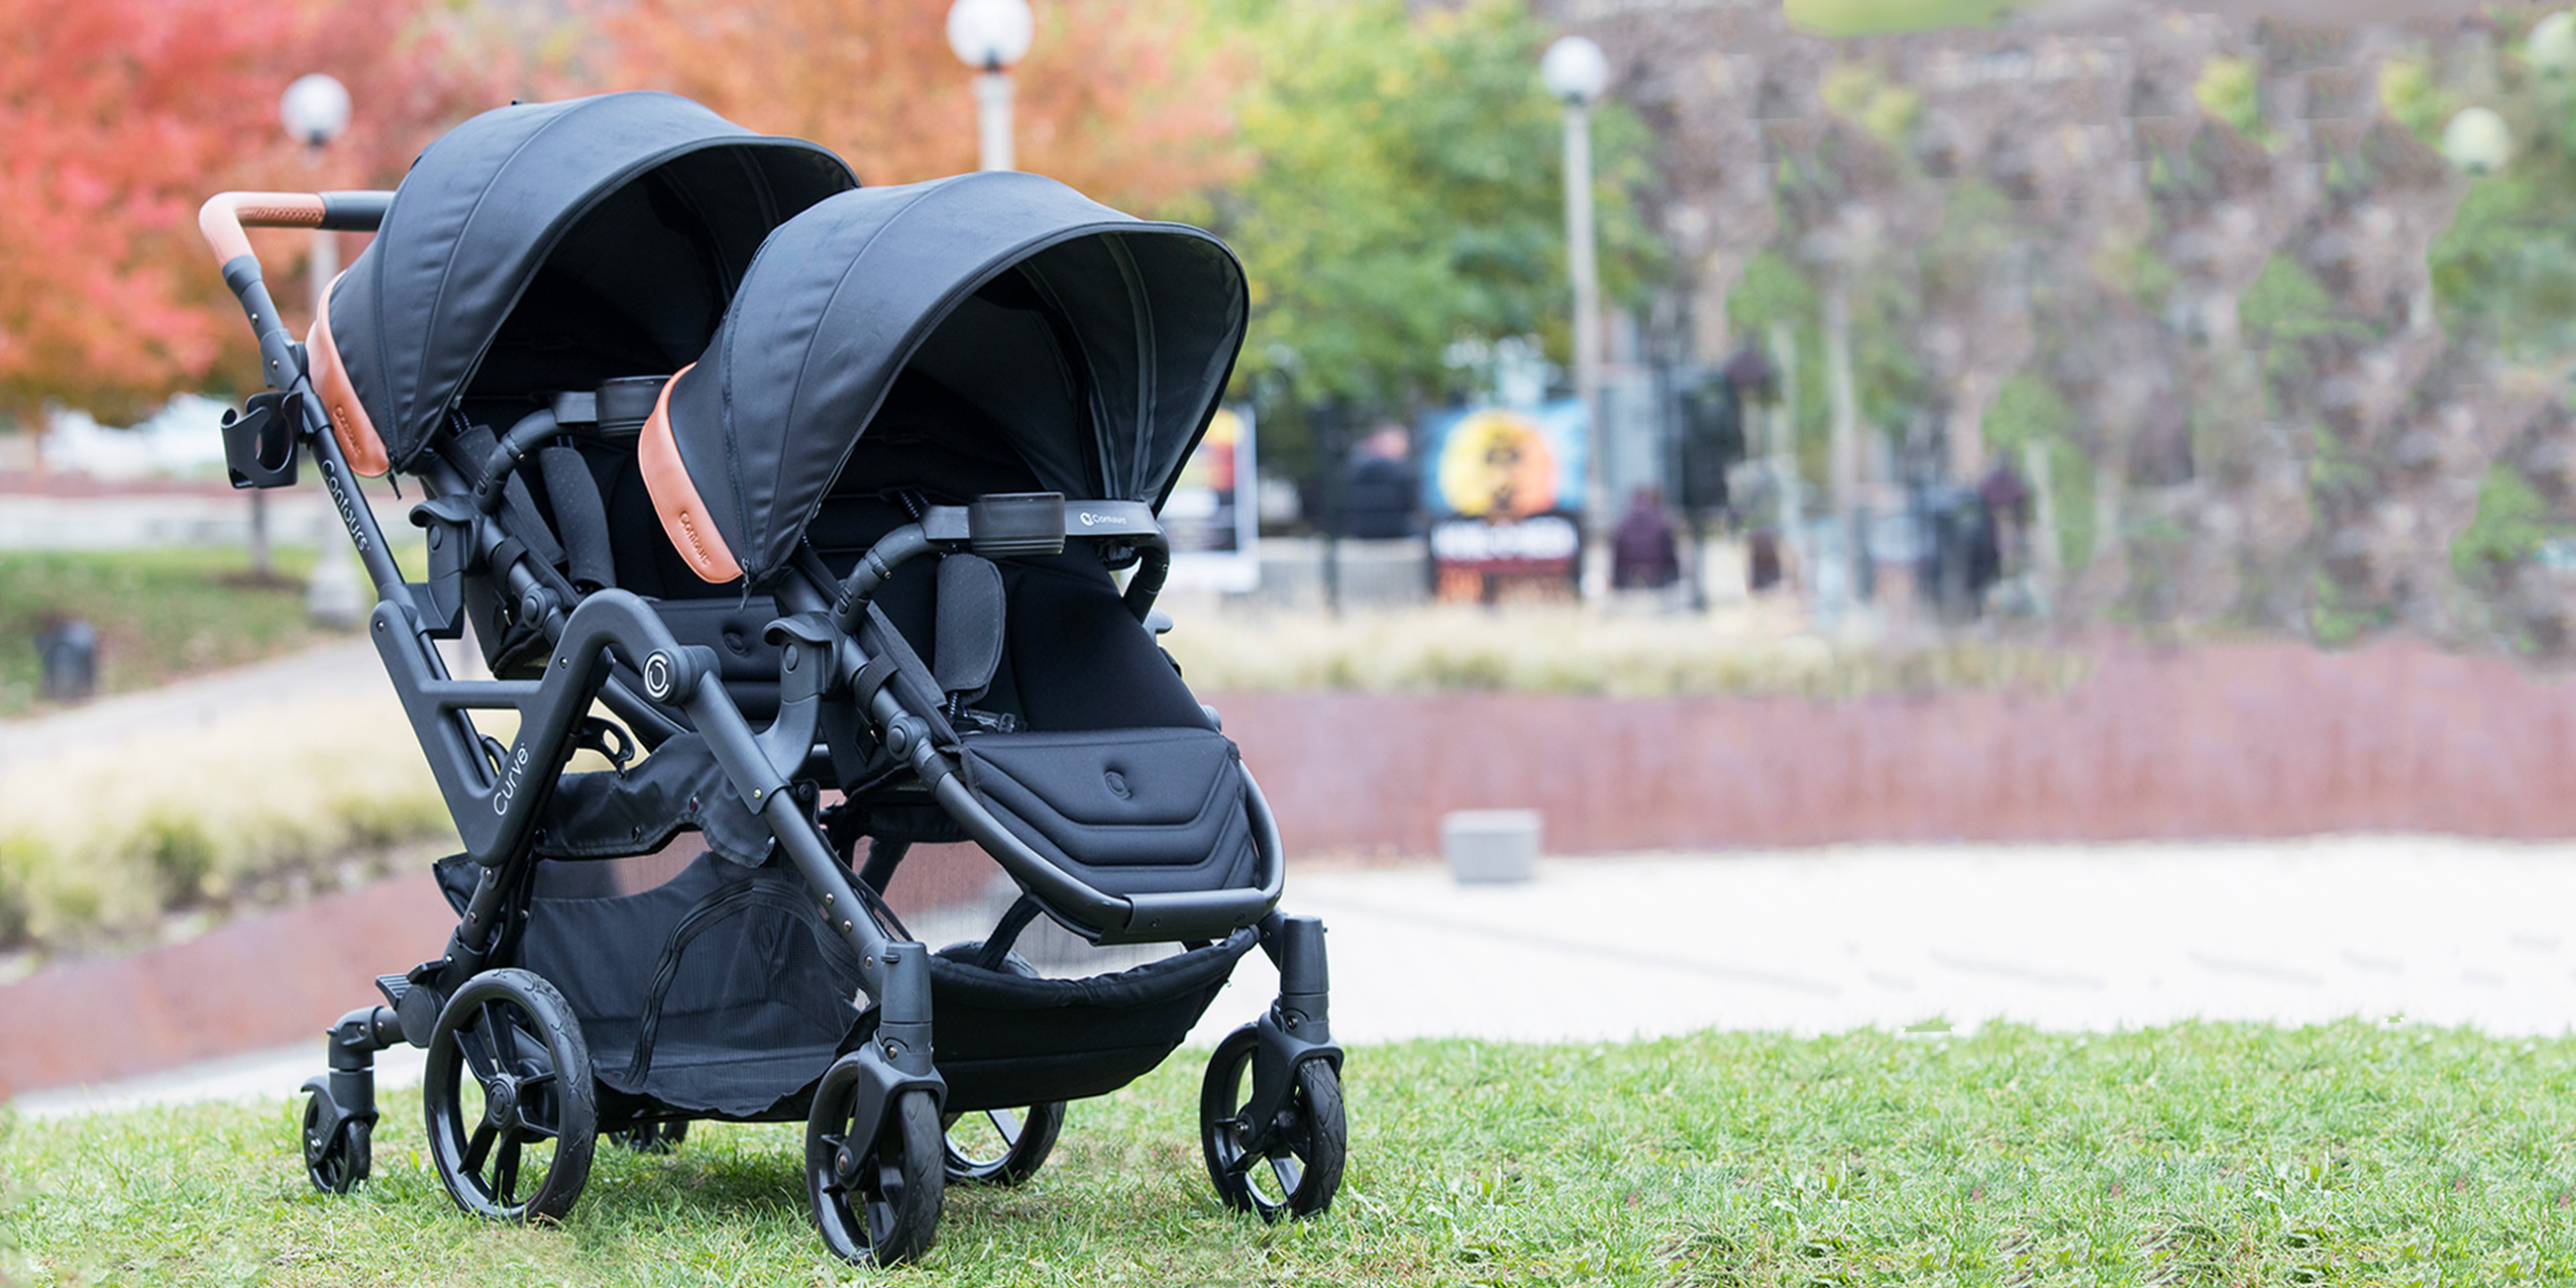 Contours Curve Double Stroller in Black